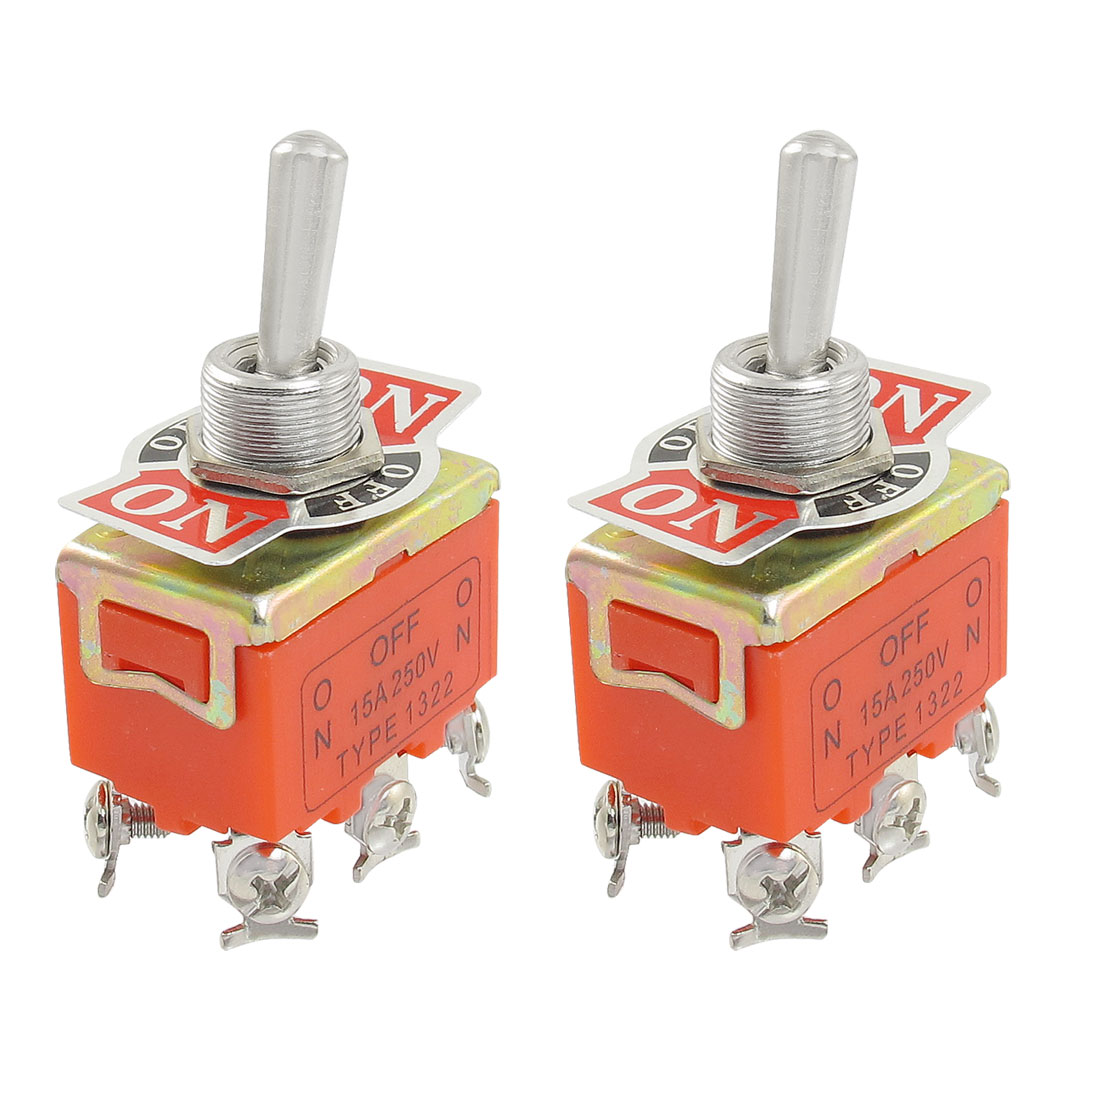 2 Pcs AC 250V 15A 3 Position 6 Screw Terminals DPDT Latching Toggle Switch